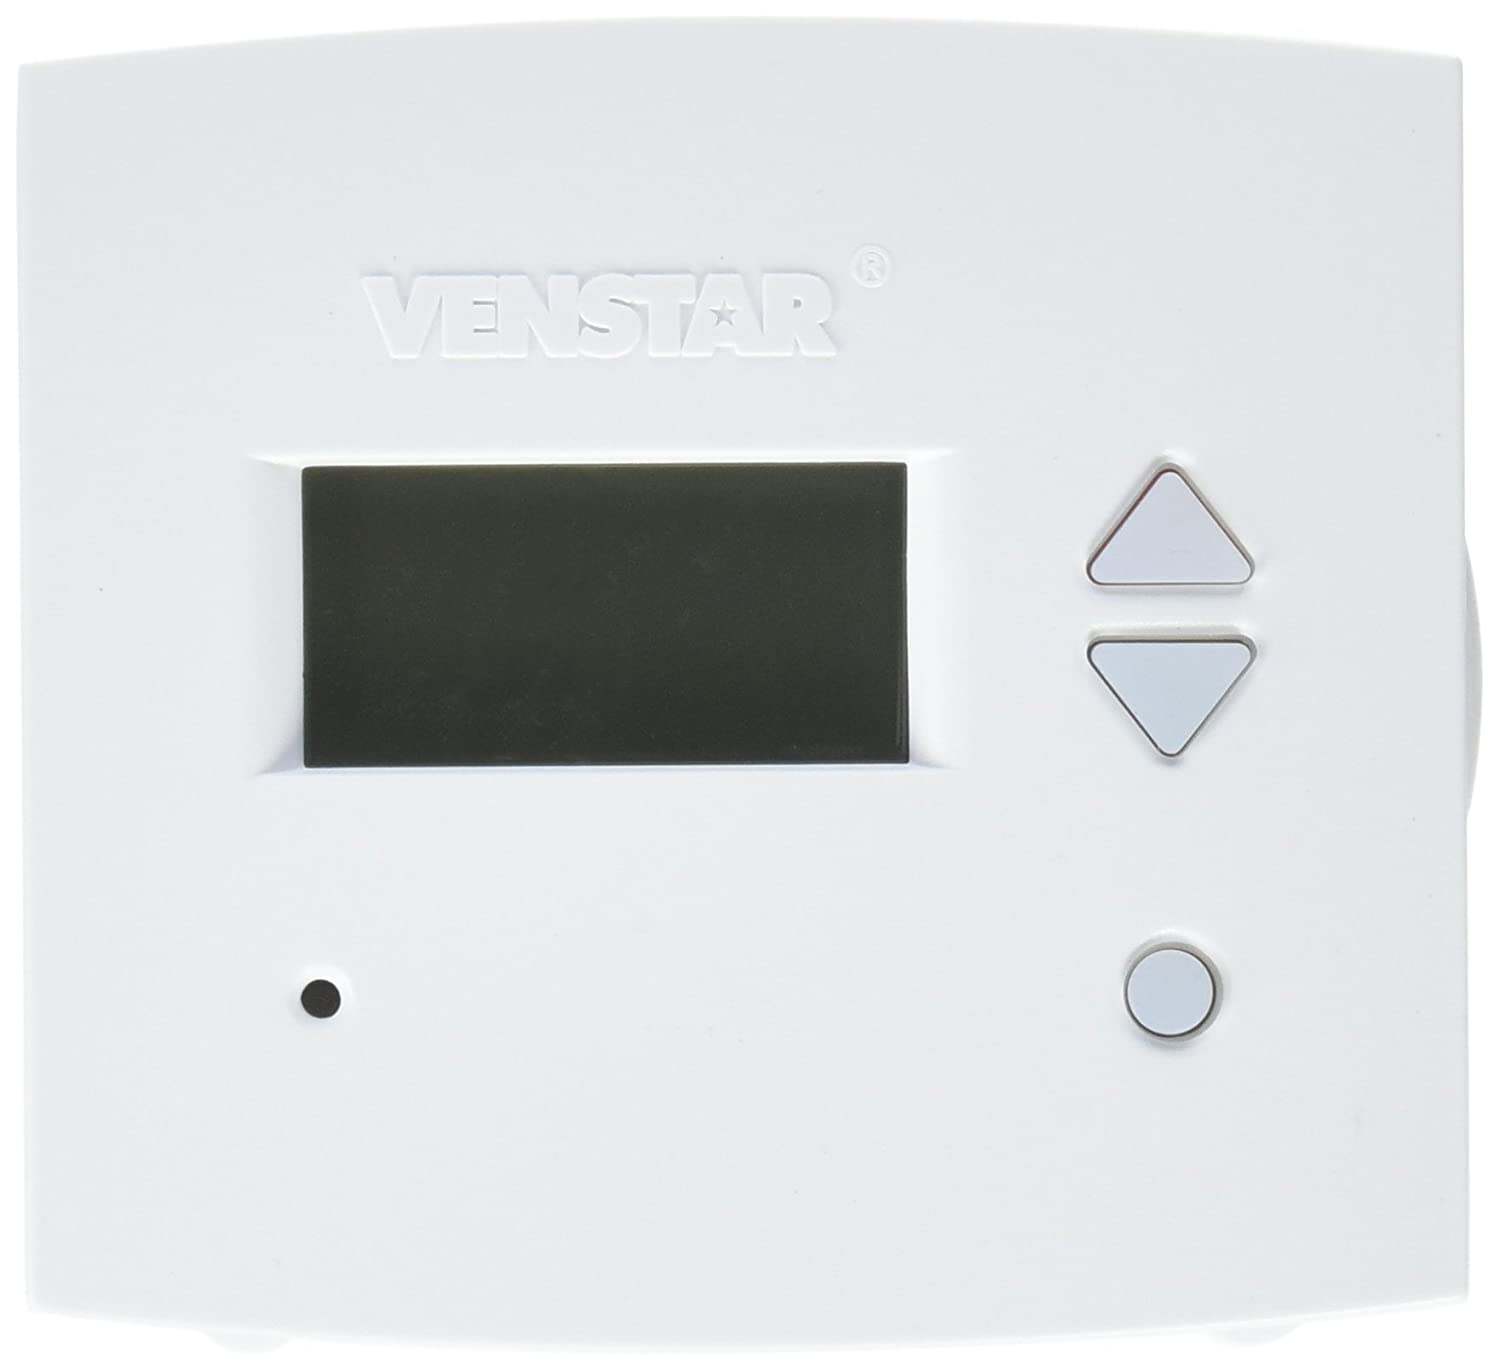 Venstar T1800 7 Day Programmable Digital Thermostat Wiring Diagram Household Thermostats